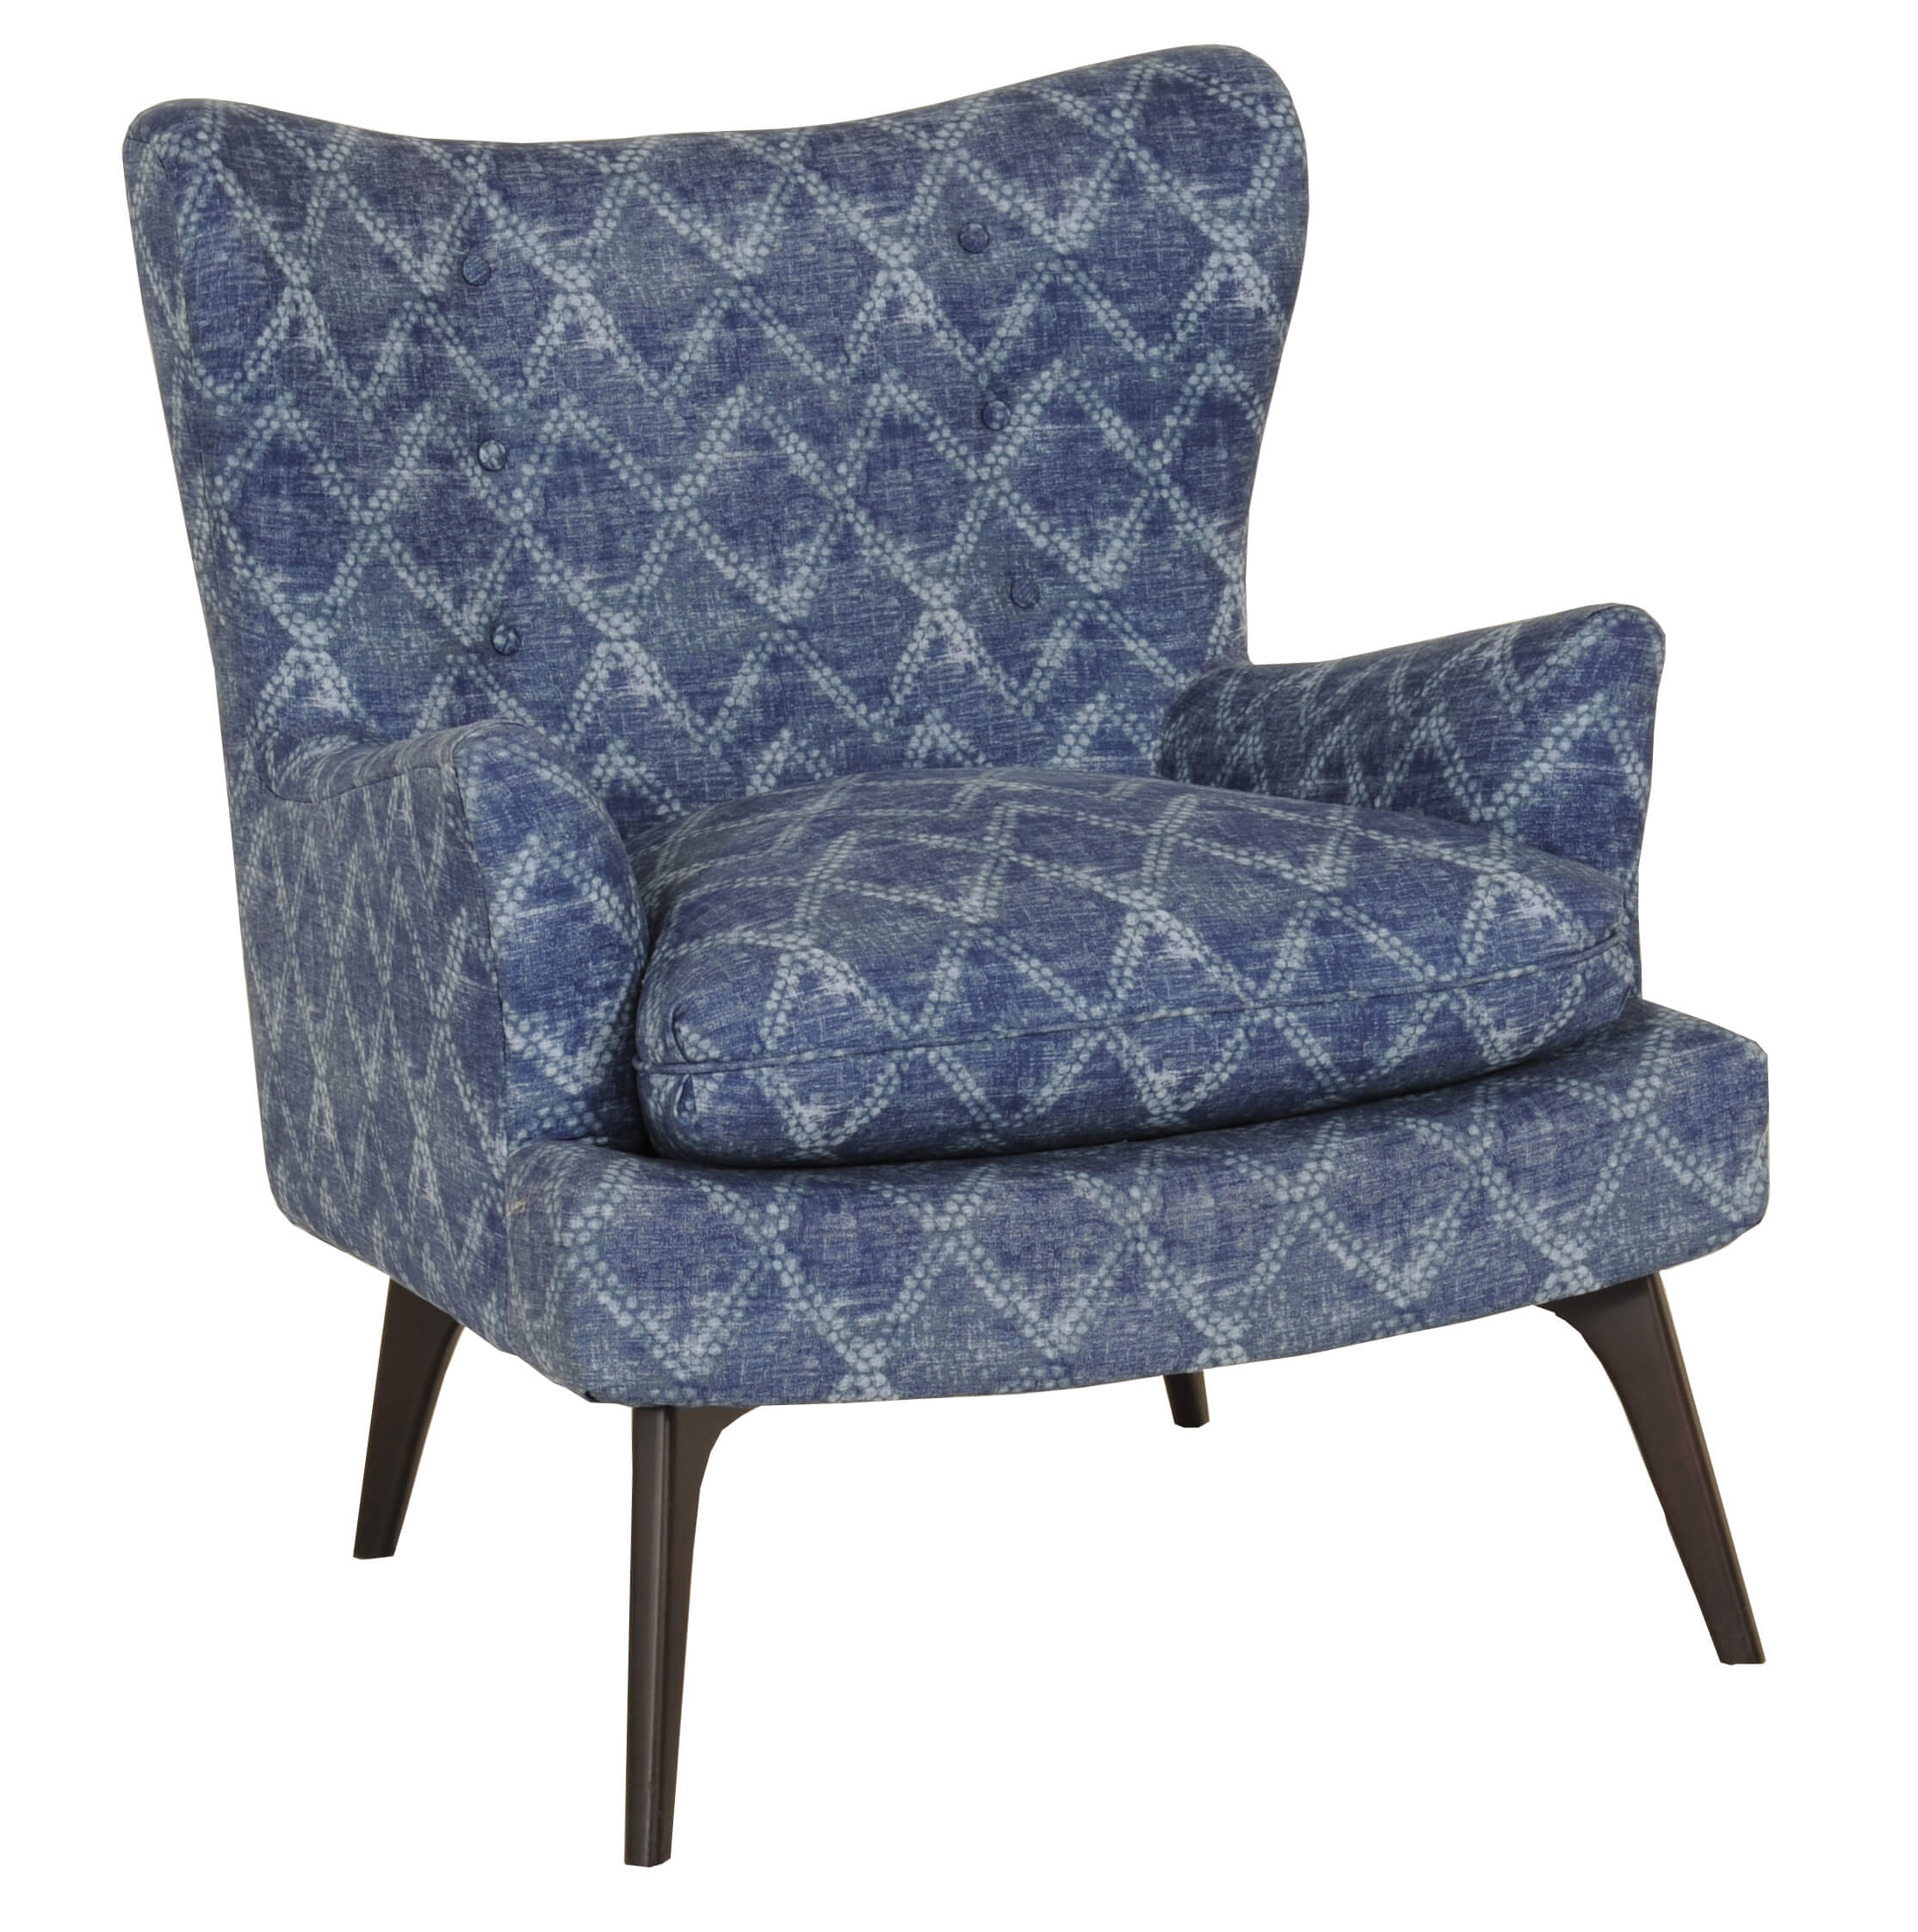 Sonja_Chair_Simple Chic